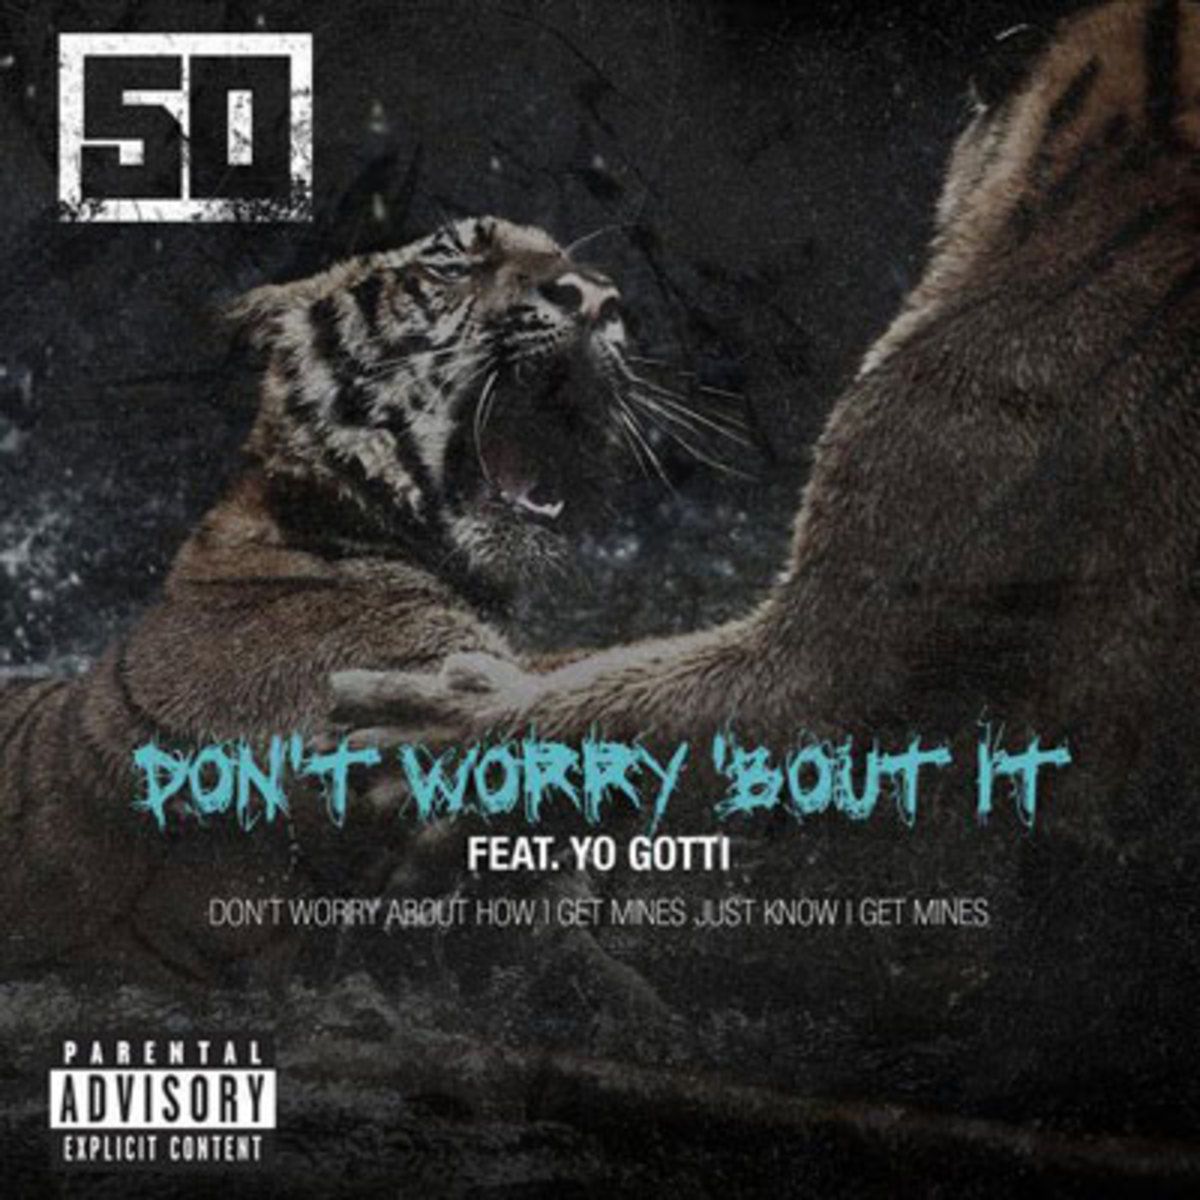 50cent-dontworry.jpg